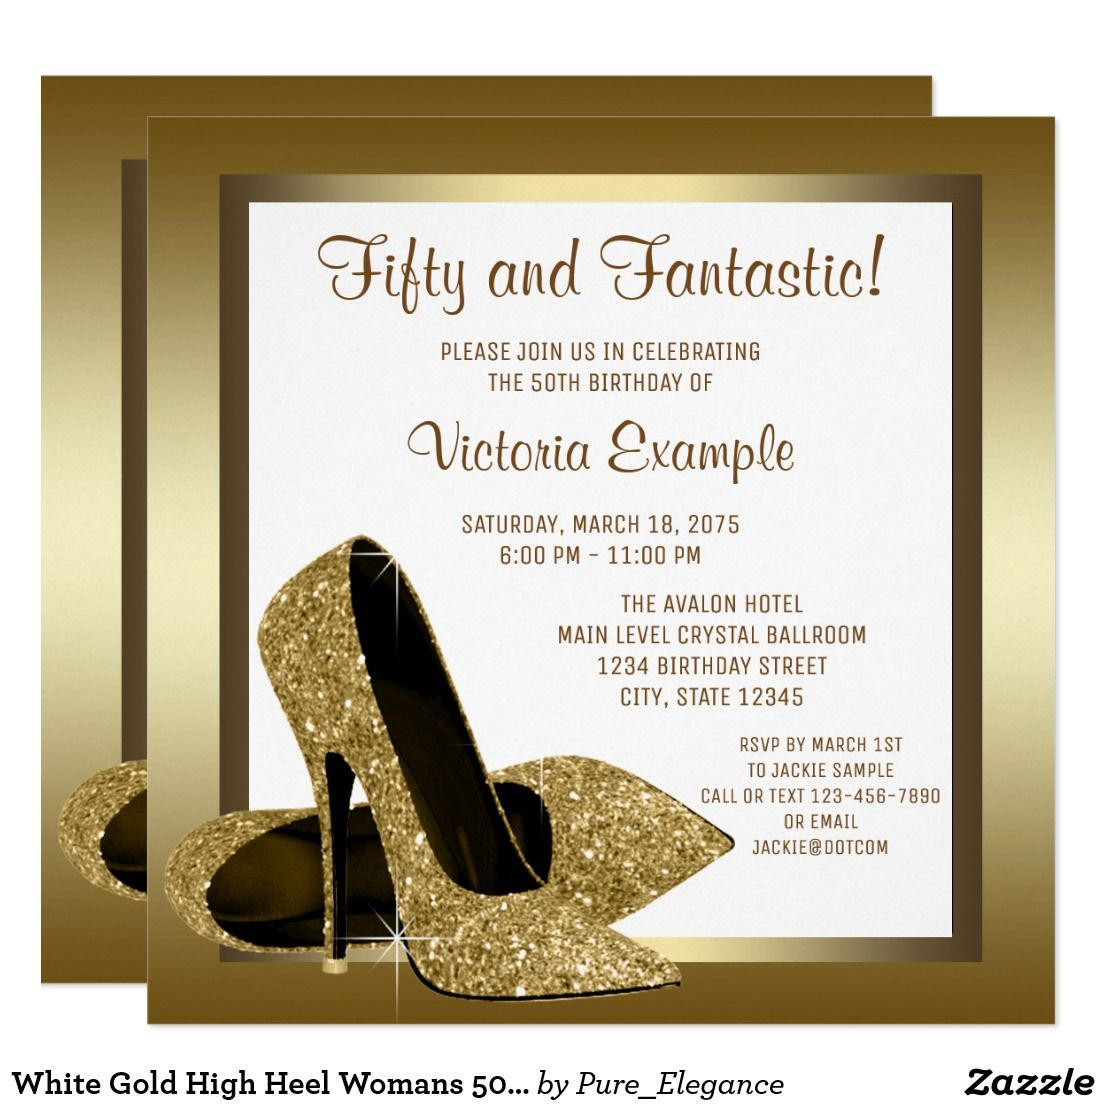 White Gold High Heel Womans 50th Birthday Party Invitation ...